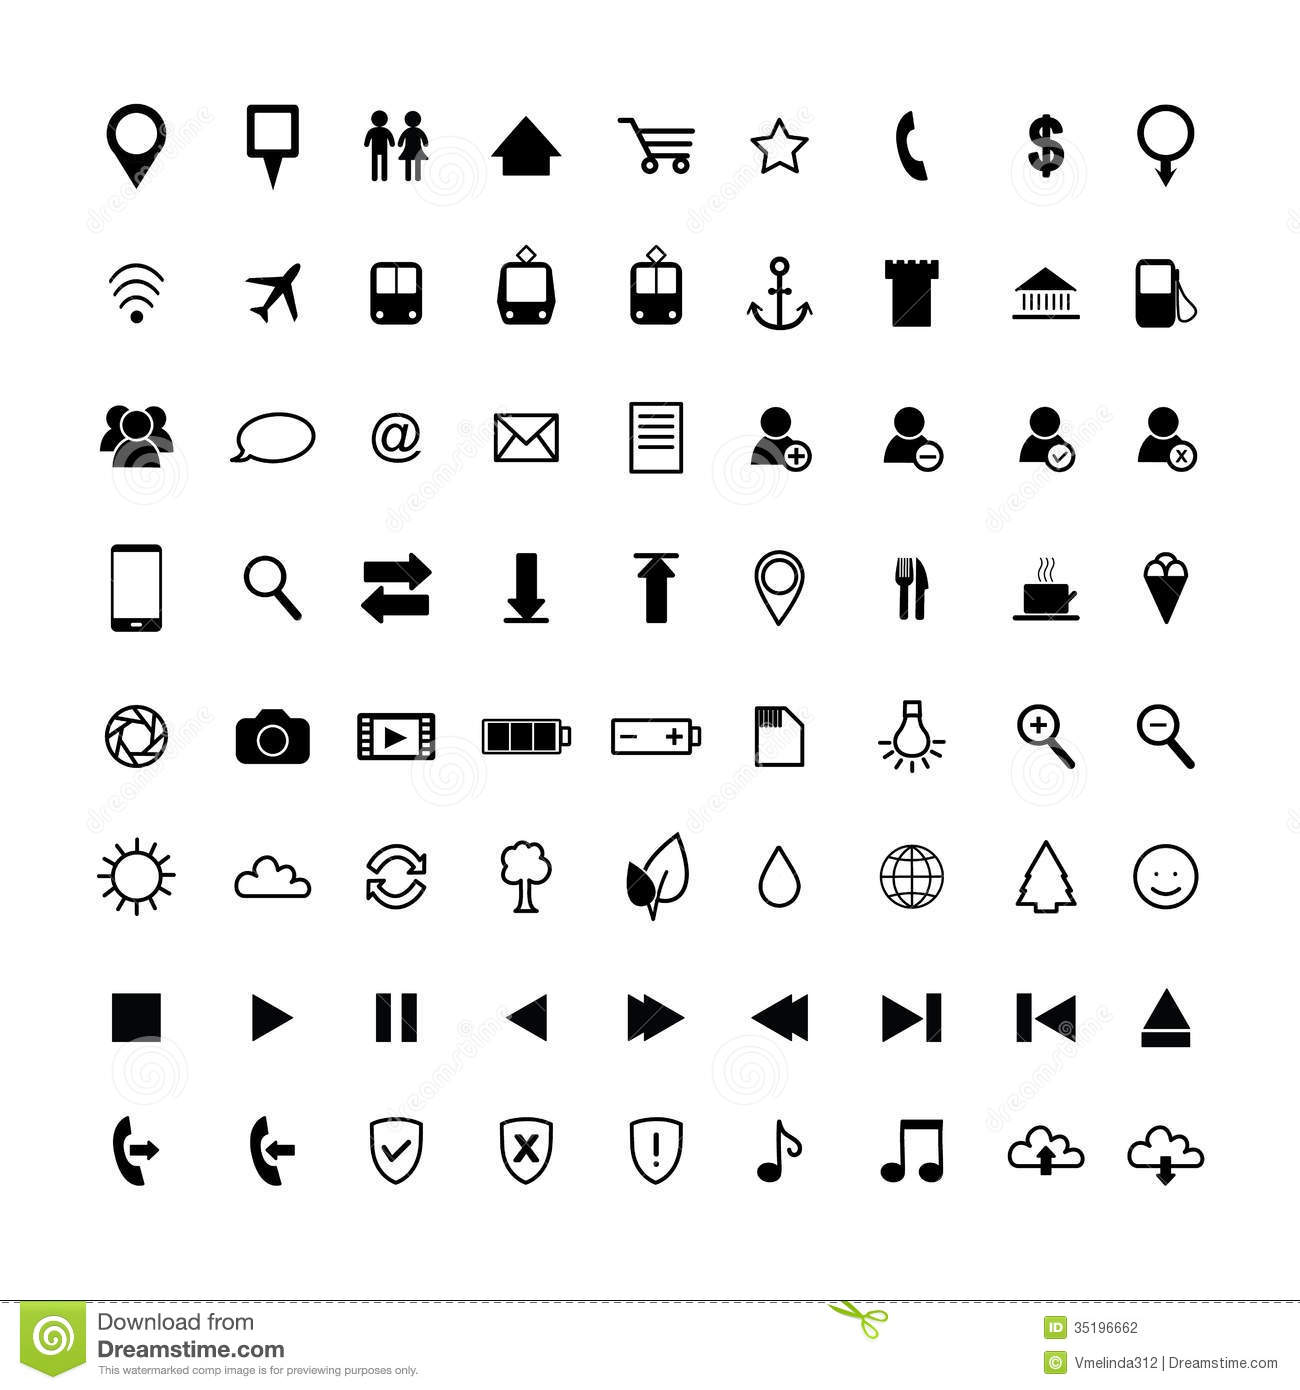 14 Solutions Icon Black And White Images